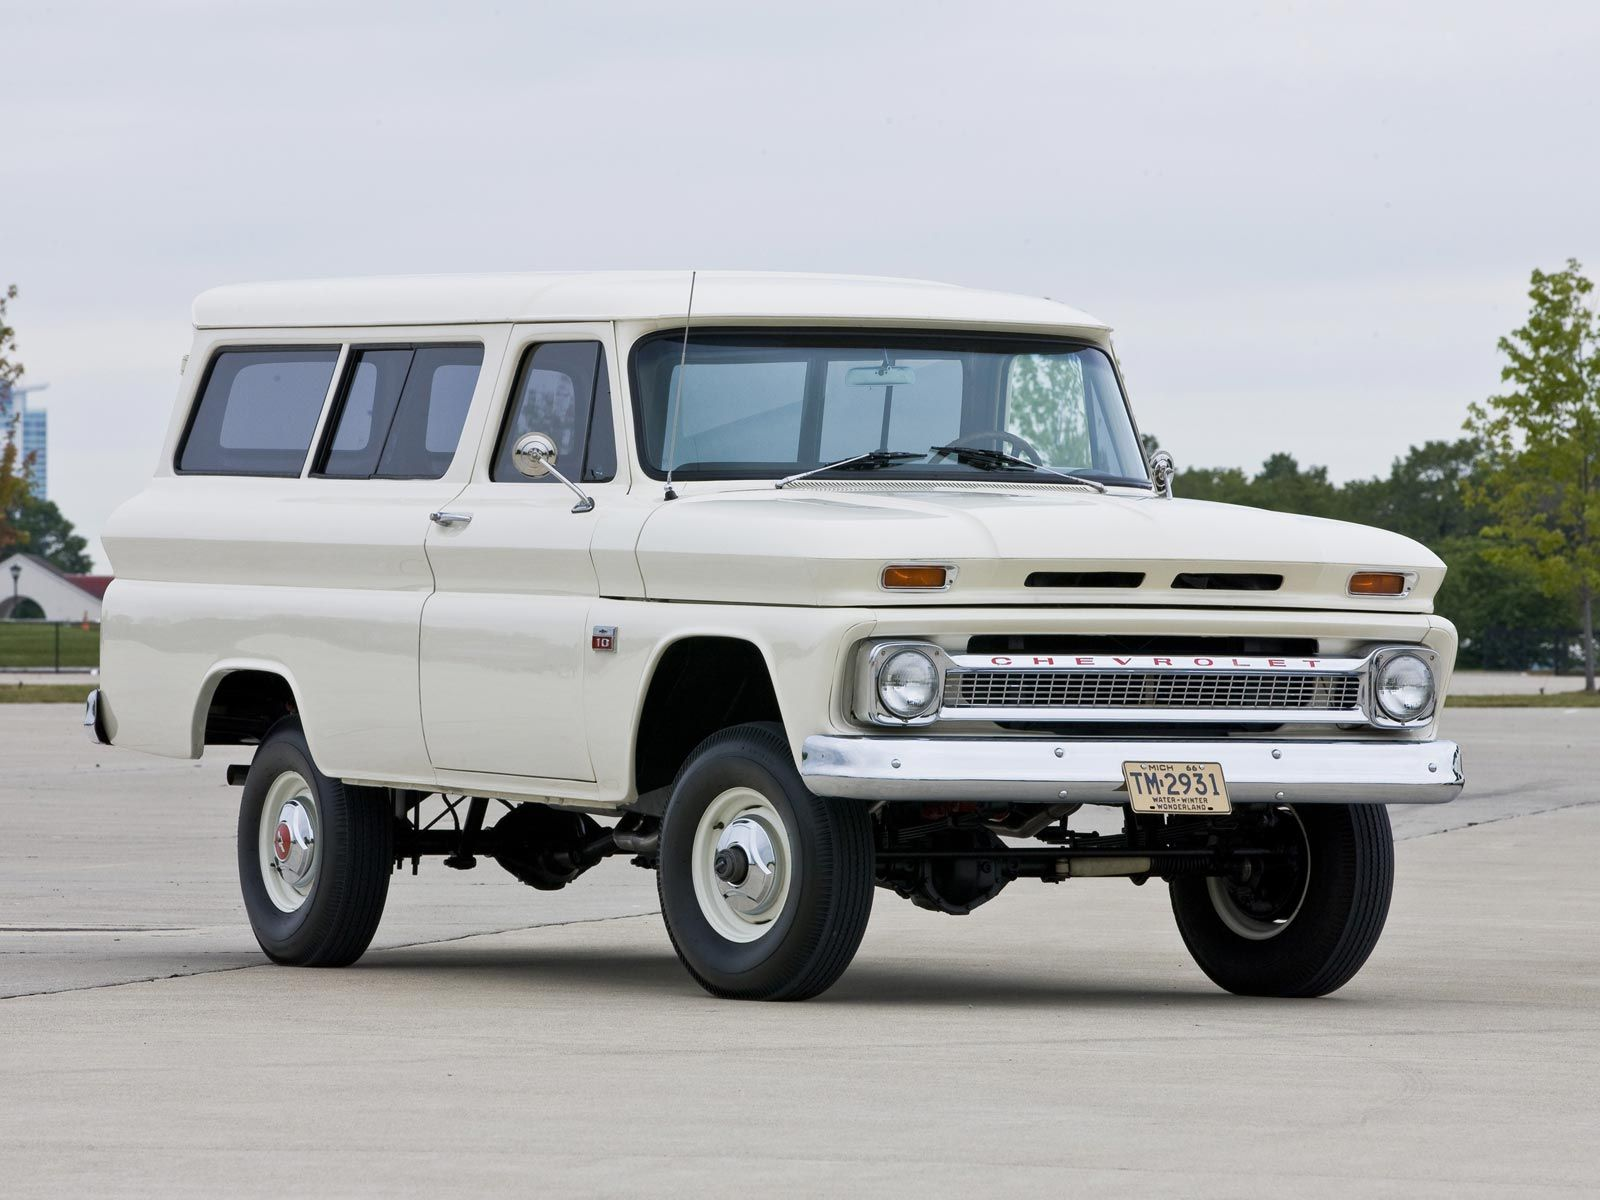 white vintage Chevrolet 60s panel delivery truck van - early SUV ...